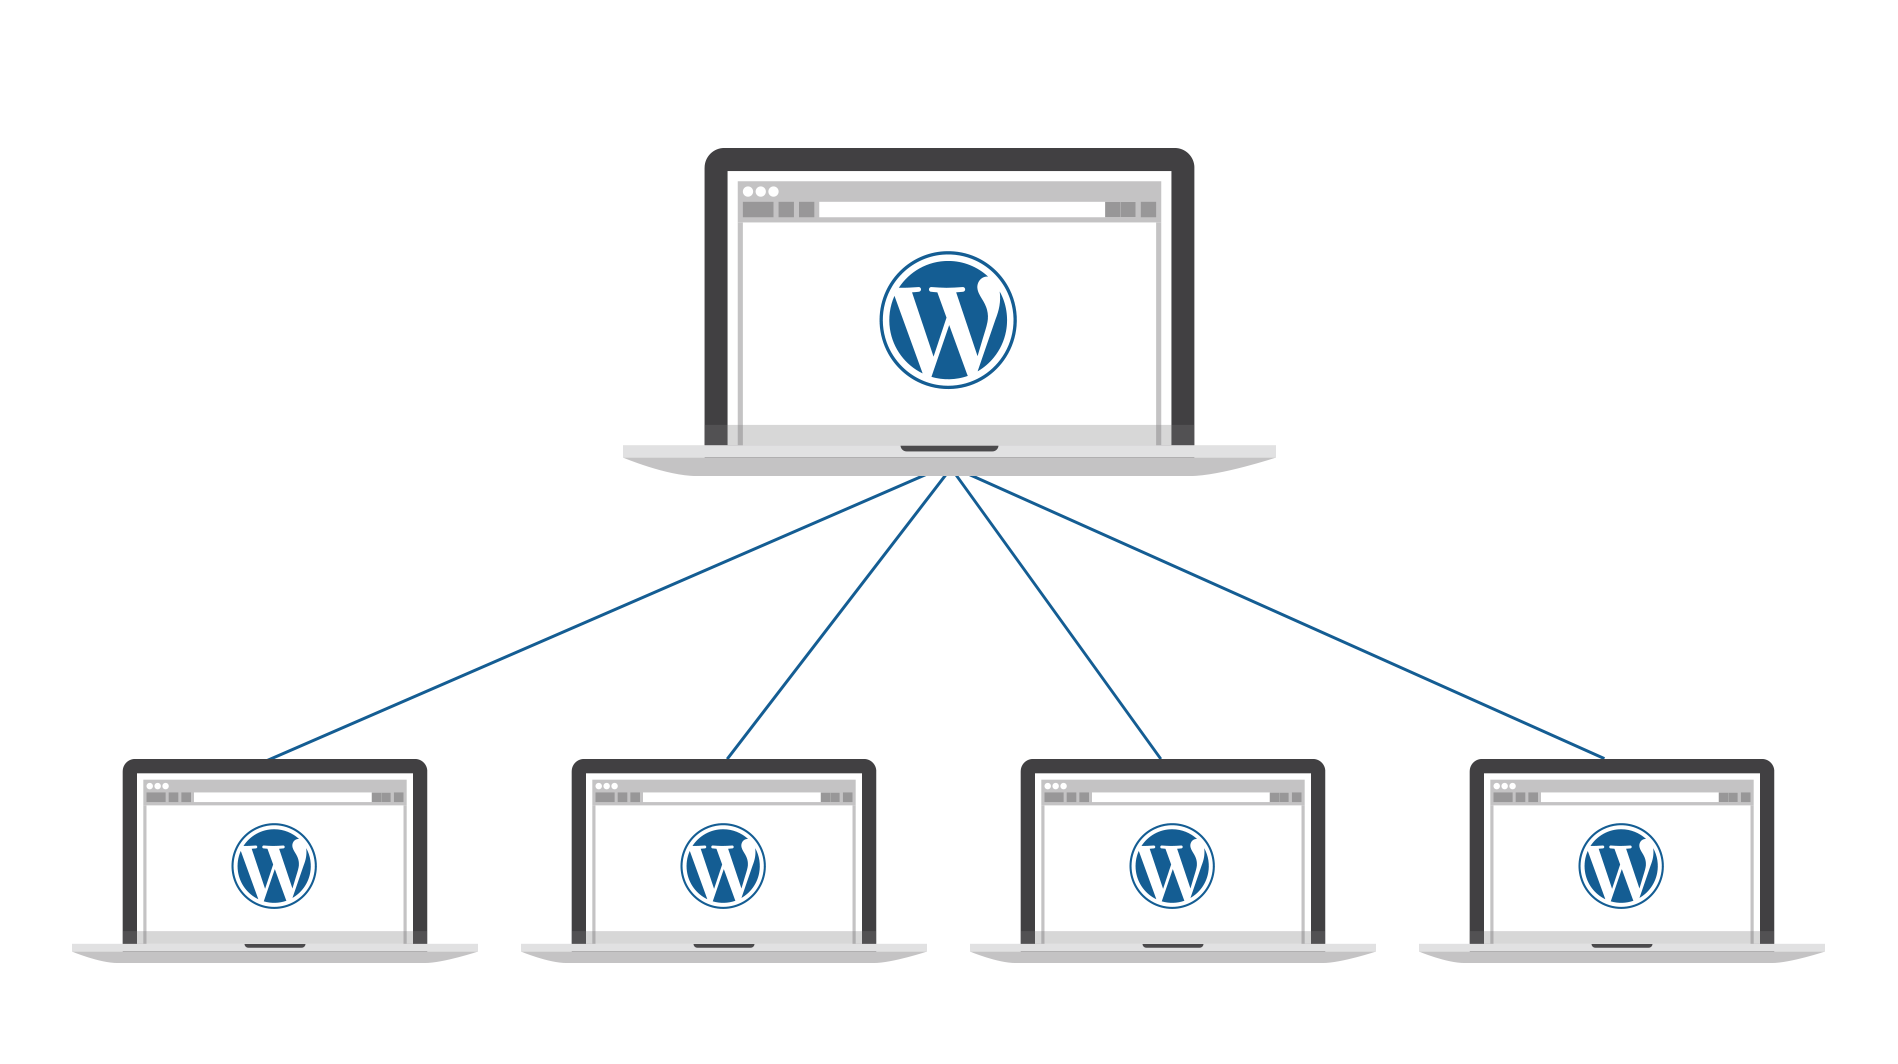 Visualization of a Wordpress Multisite Setup